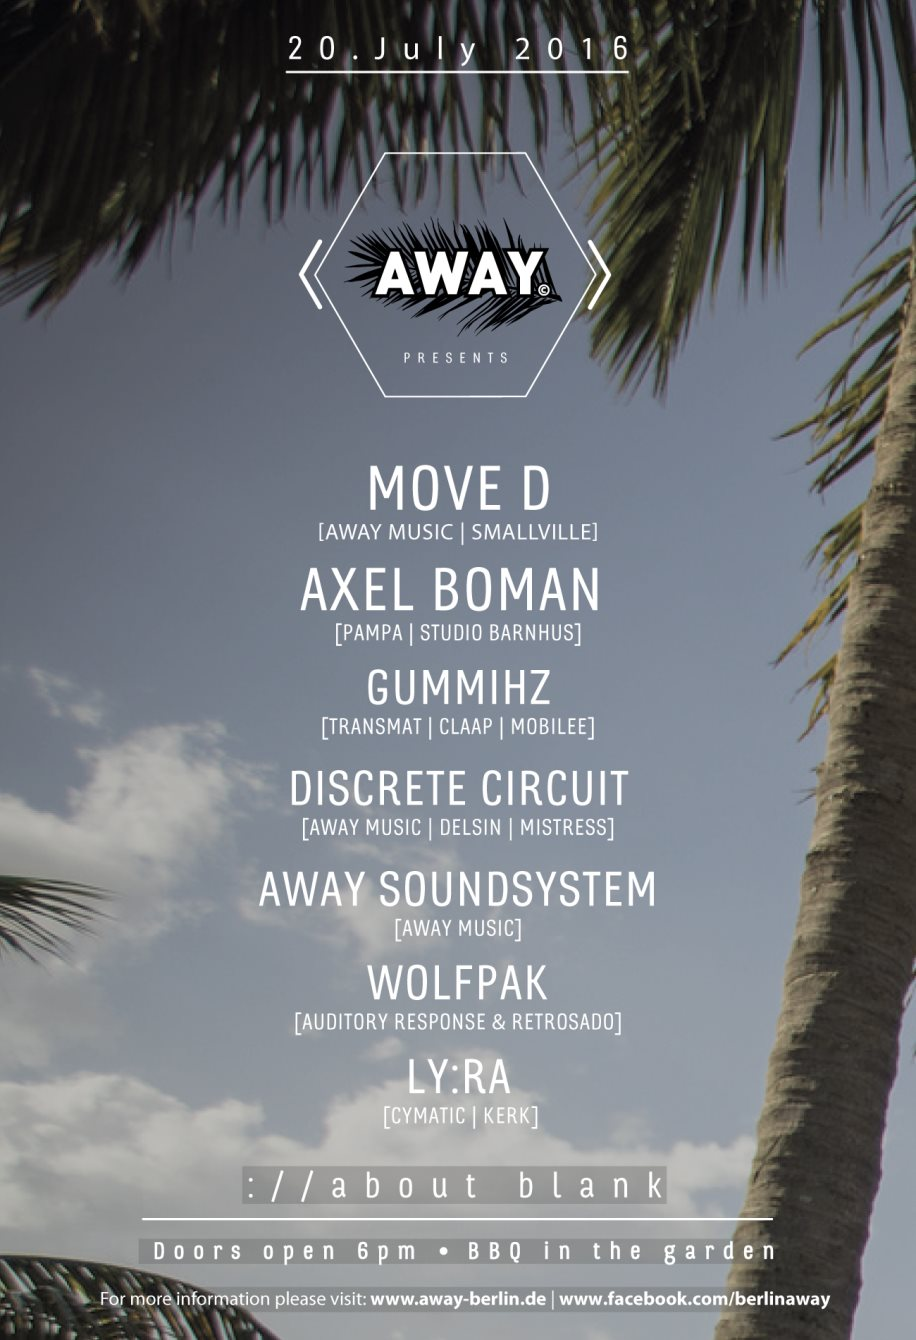 download → Axel Boman & Move D - live at About Blank Garden (Berlin) - 20-Jul-2016